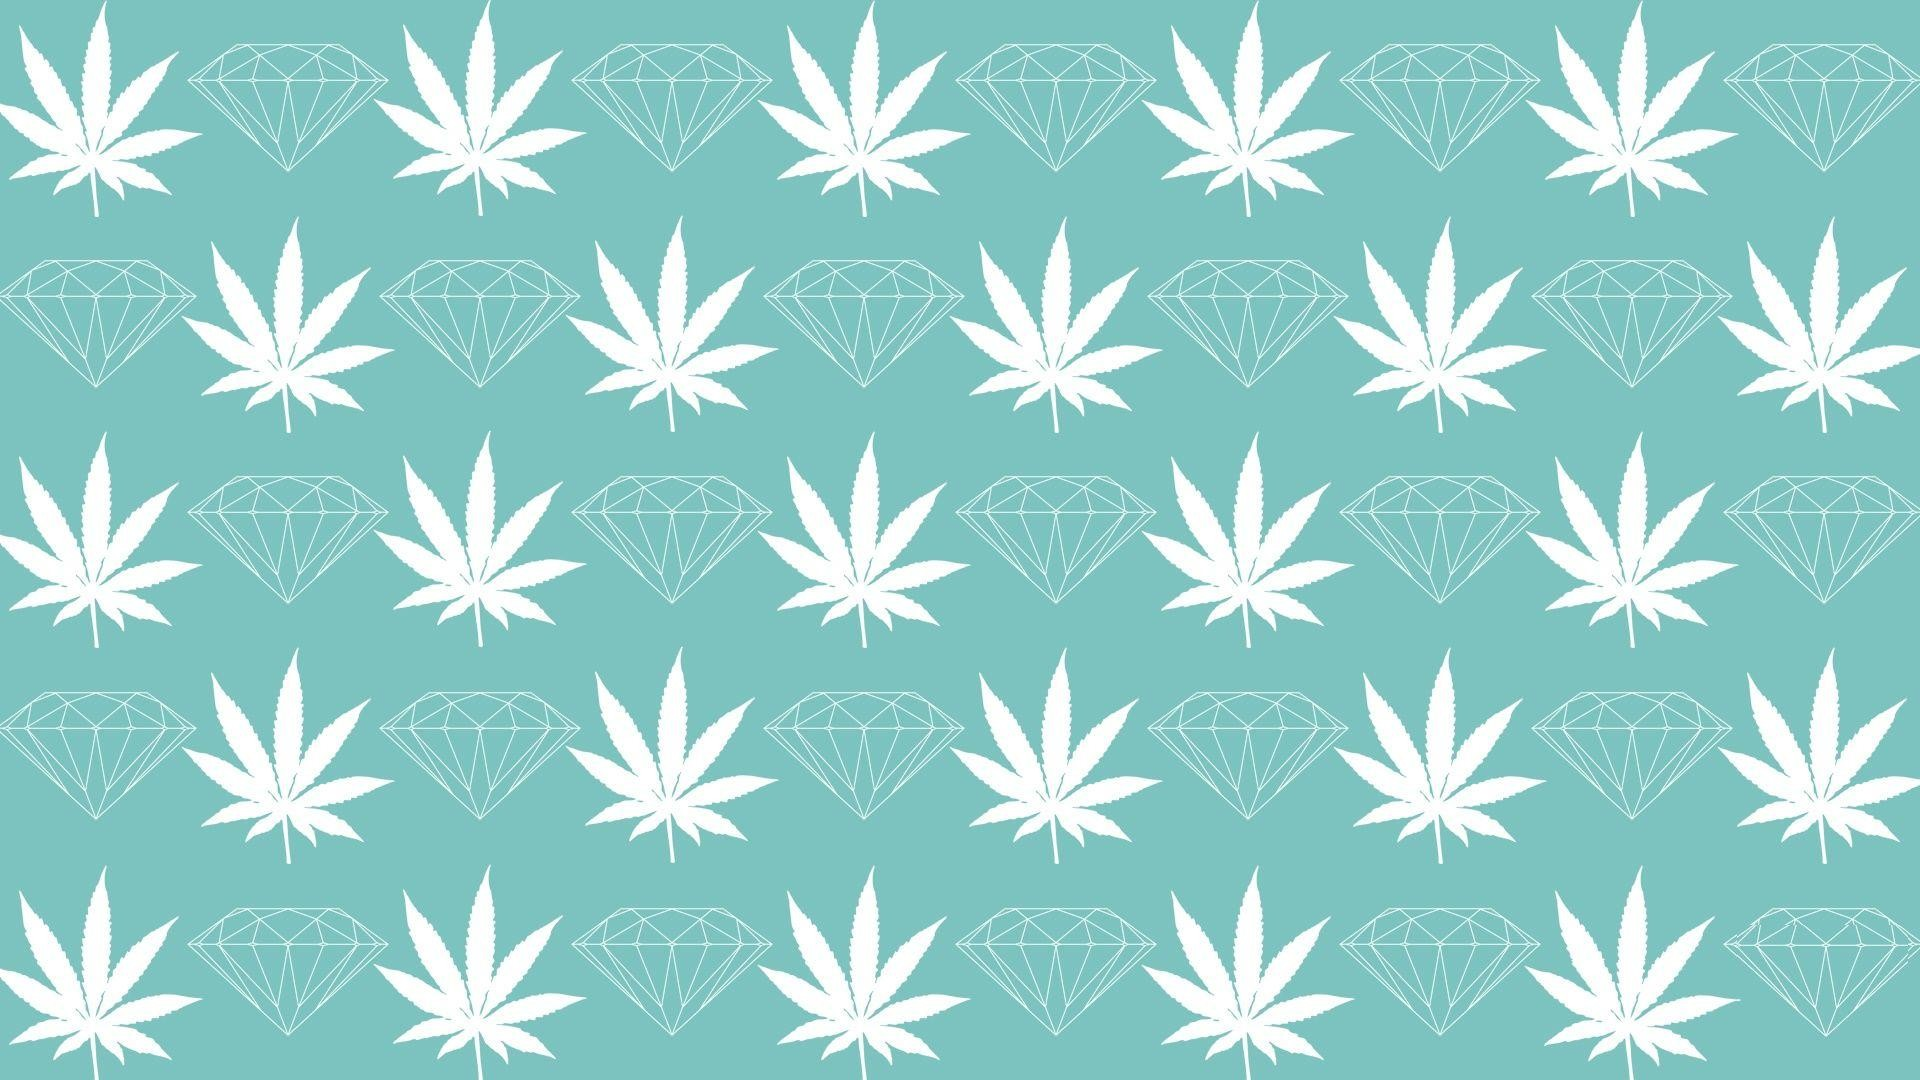 Diamond Supply Co Wallpapers | HD Wallpapers, Backgrounds, Images .